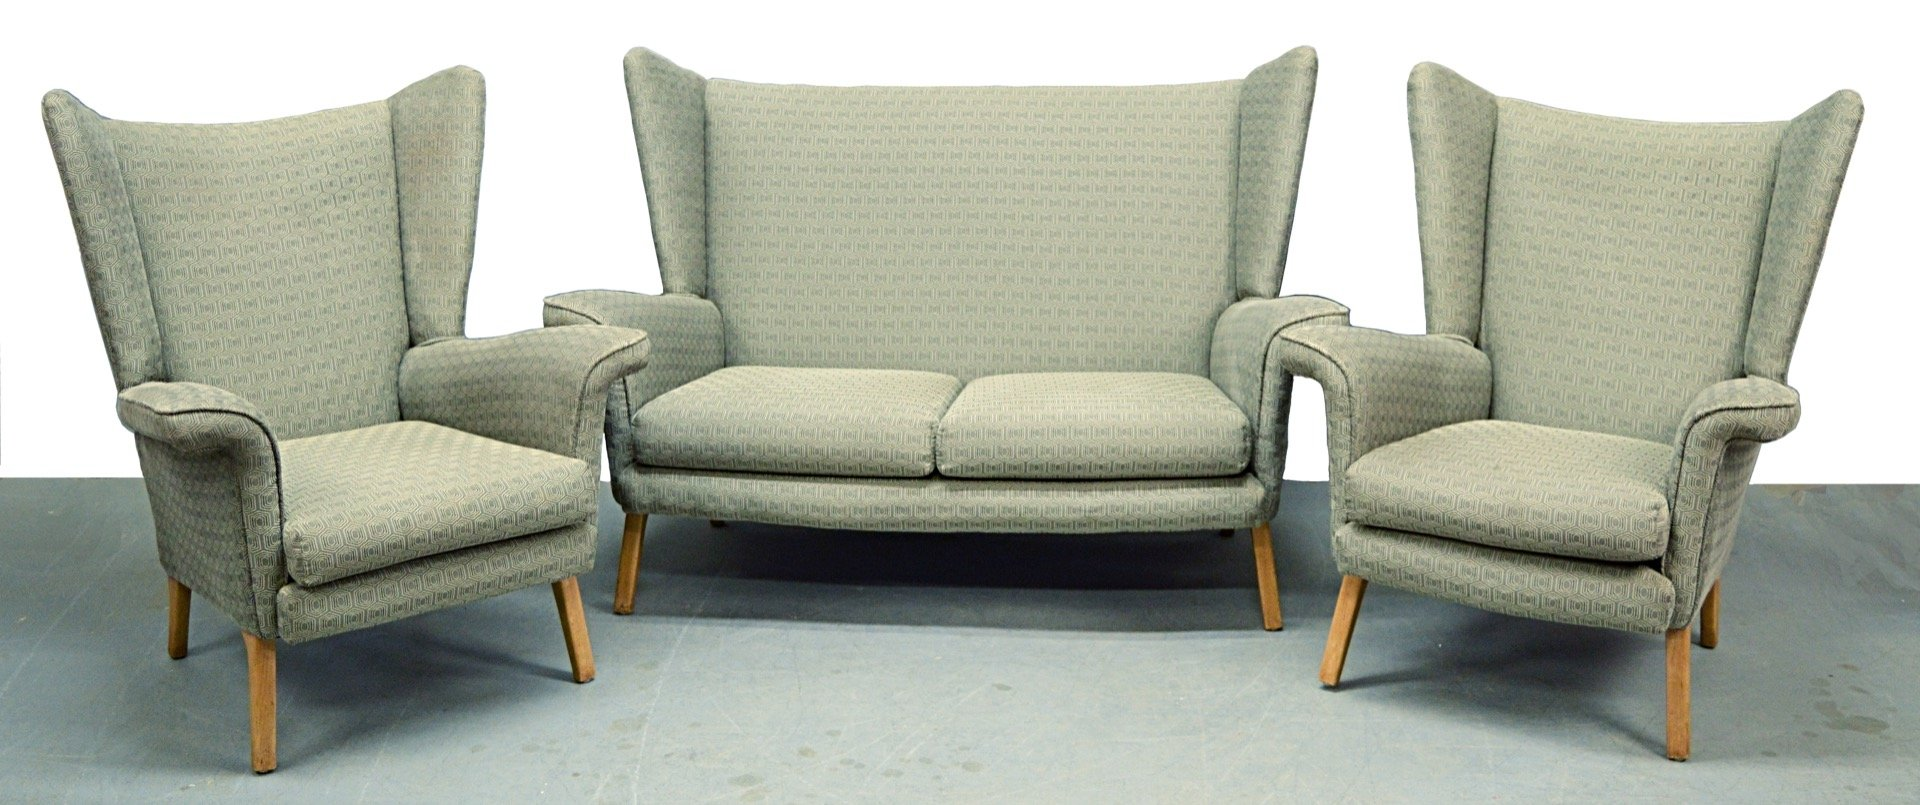 Mid-Century 3-Piece Living Room Set, 1950s for sale at Pamono